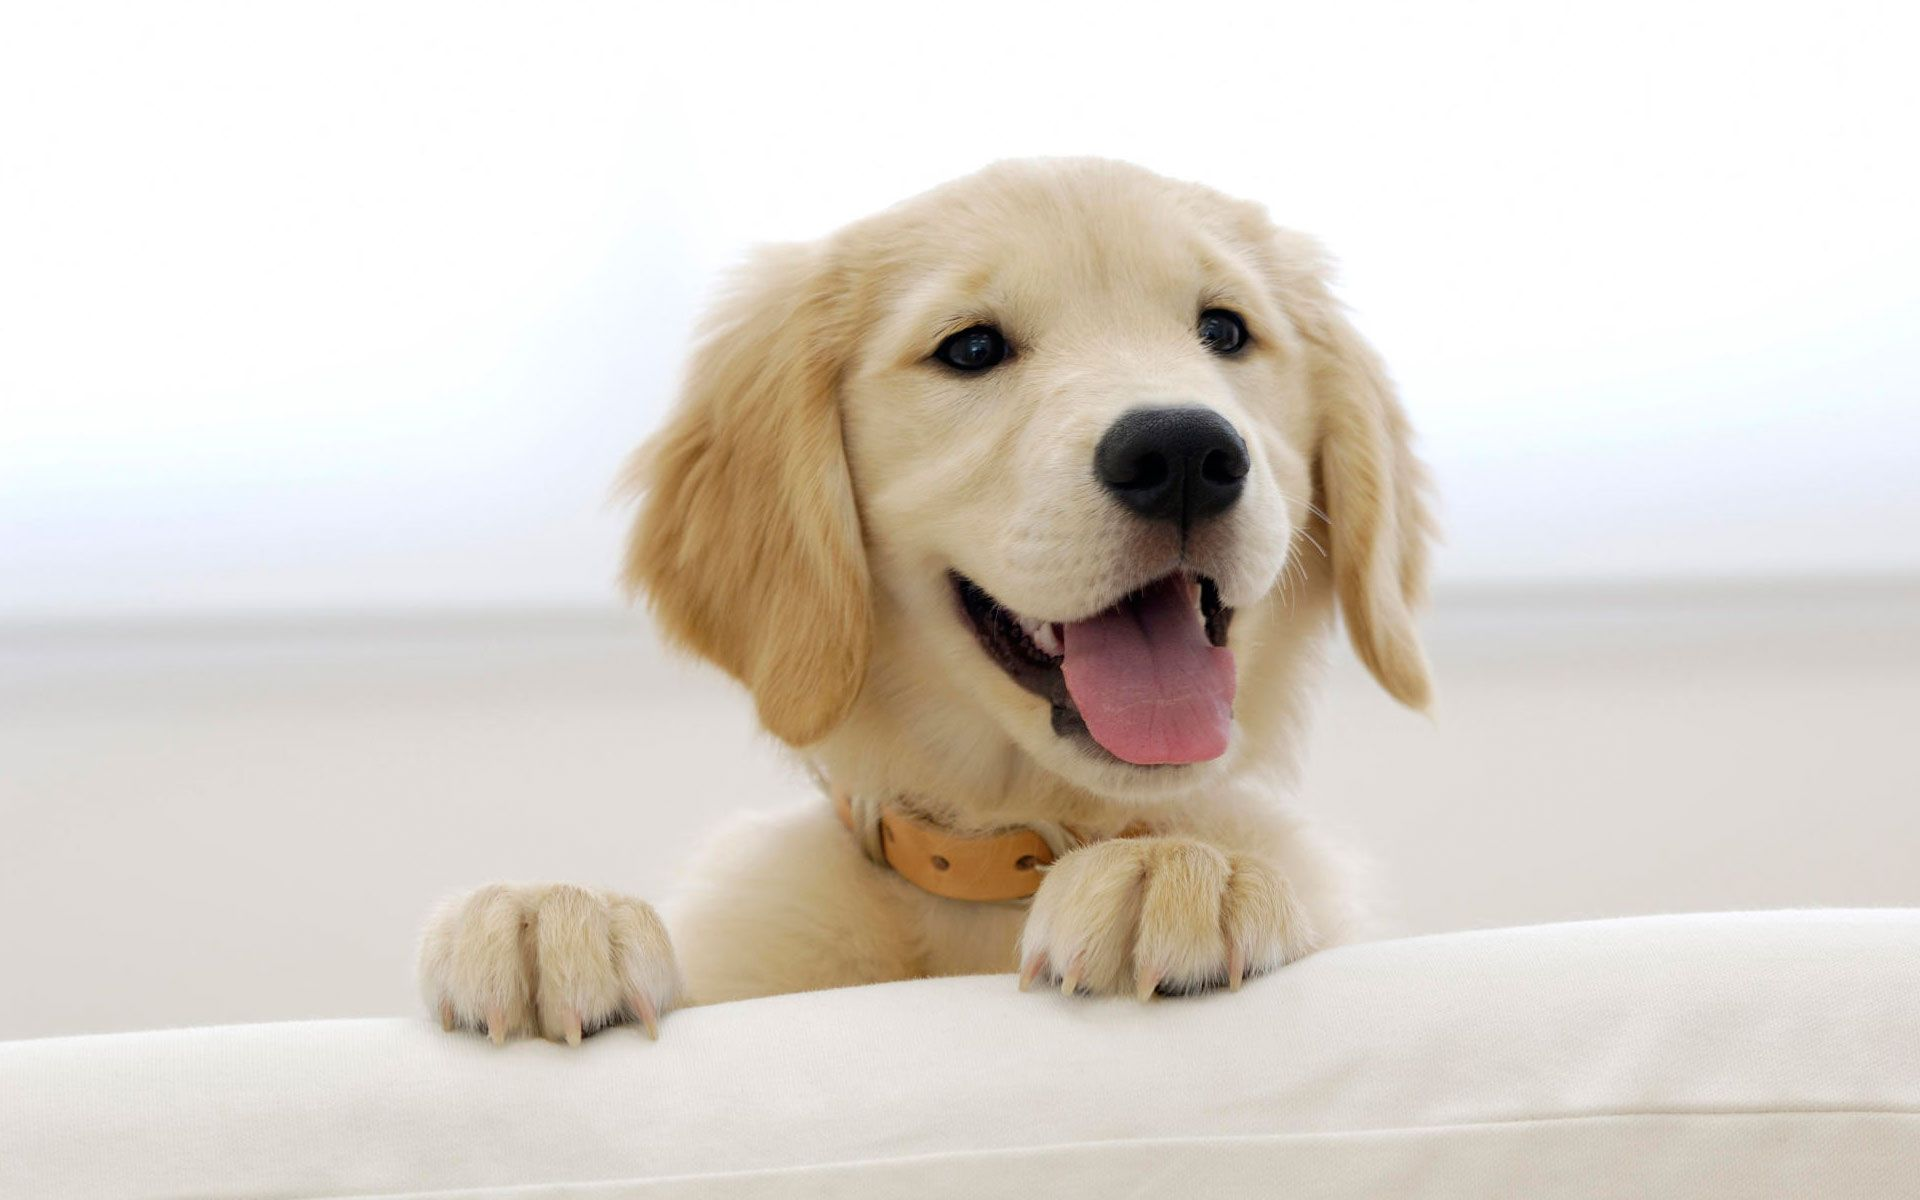 While A Golden Retriever Puppy Can Provide Joy And Happiness To Your Family His Accidents Indoors Are Not Retriever Puppy Golden Retriever Puppy Cute Puppies